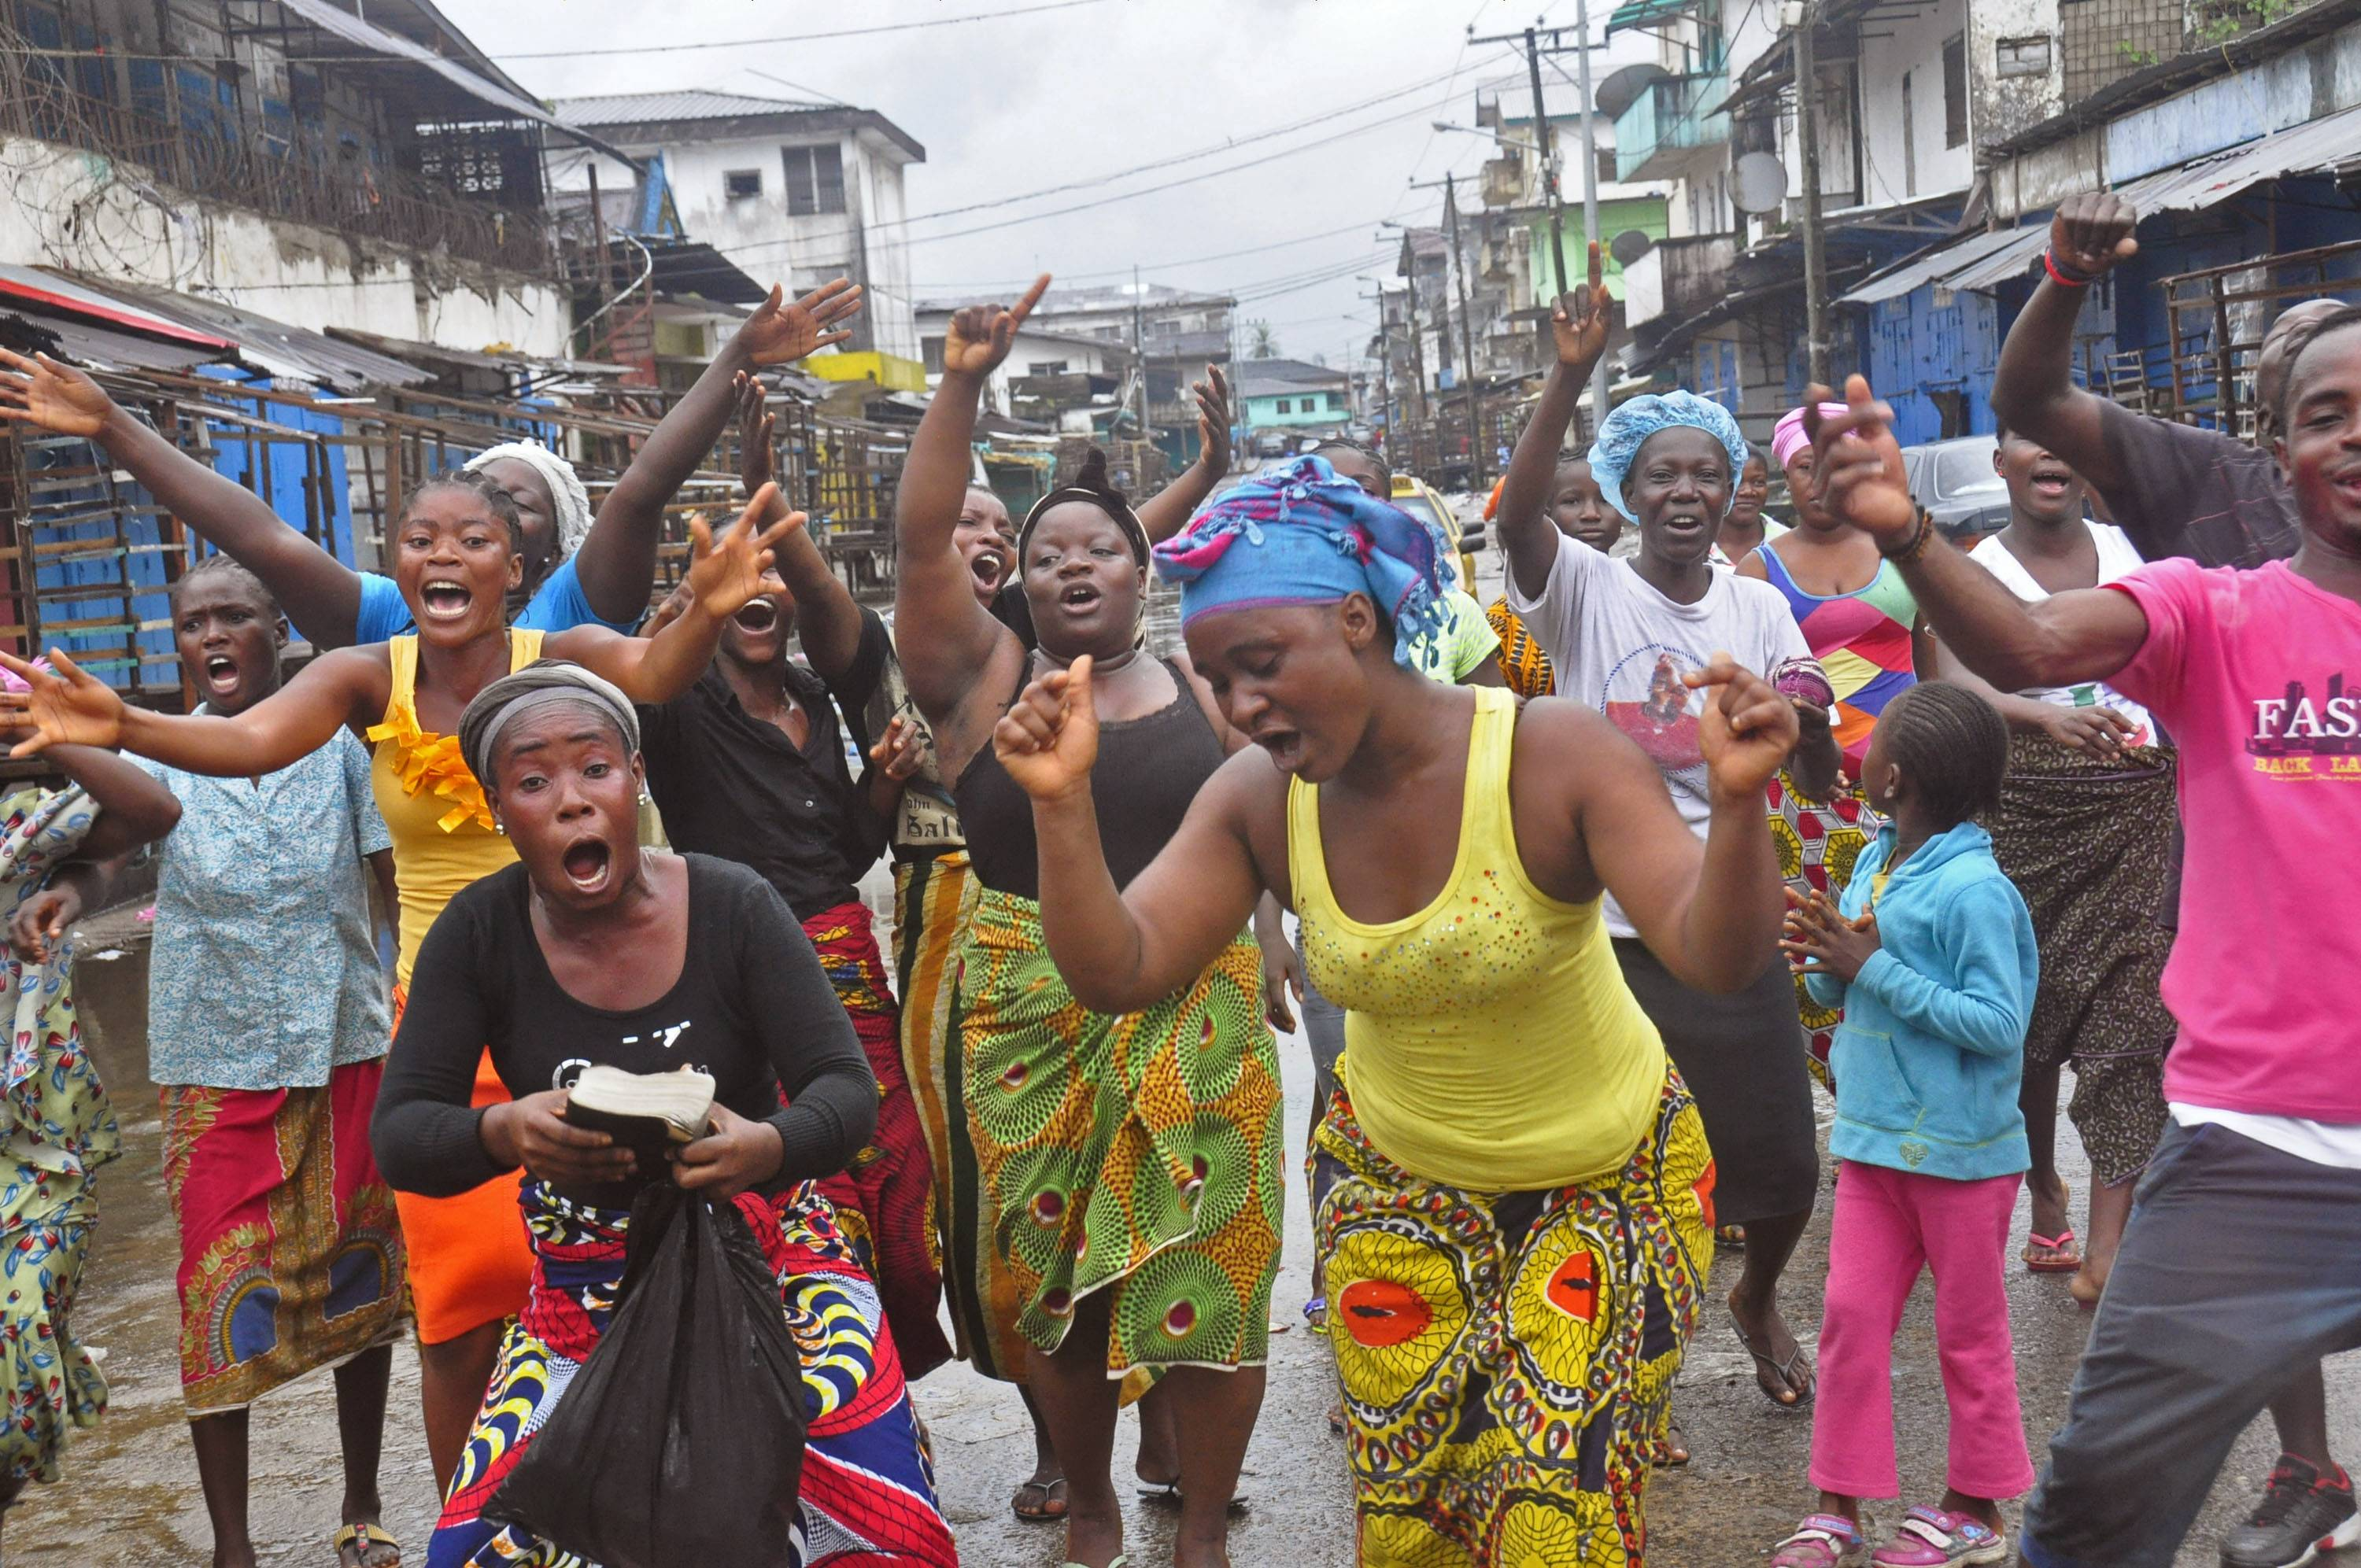 People celebrate in a street outside of West Point slum in Monrovia, Liberia, Saturday, Aug. 30. Crowds cheer and celebrate in the streets after Liberian authorities reopened a slum where tens of thousands of people were barricaded amid the country's Ebola outbreak. The slum of 50,000 people in Liberia's capital was sealed off more than a week ago, sparking unrest and leaving many without access to food or safe water.